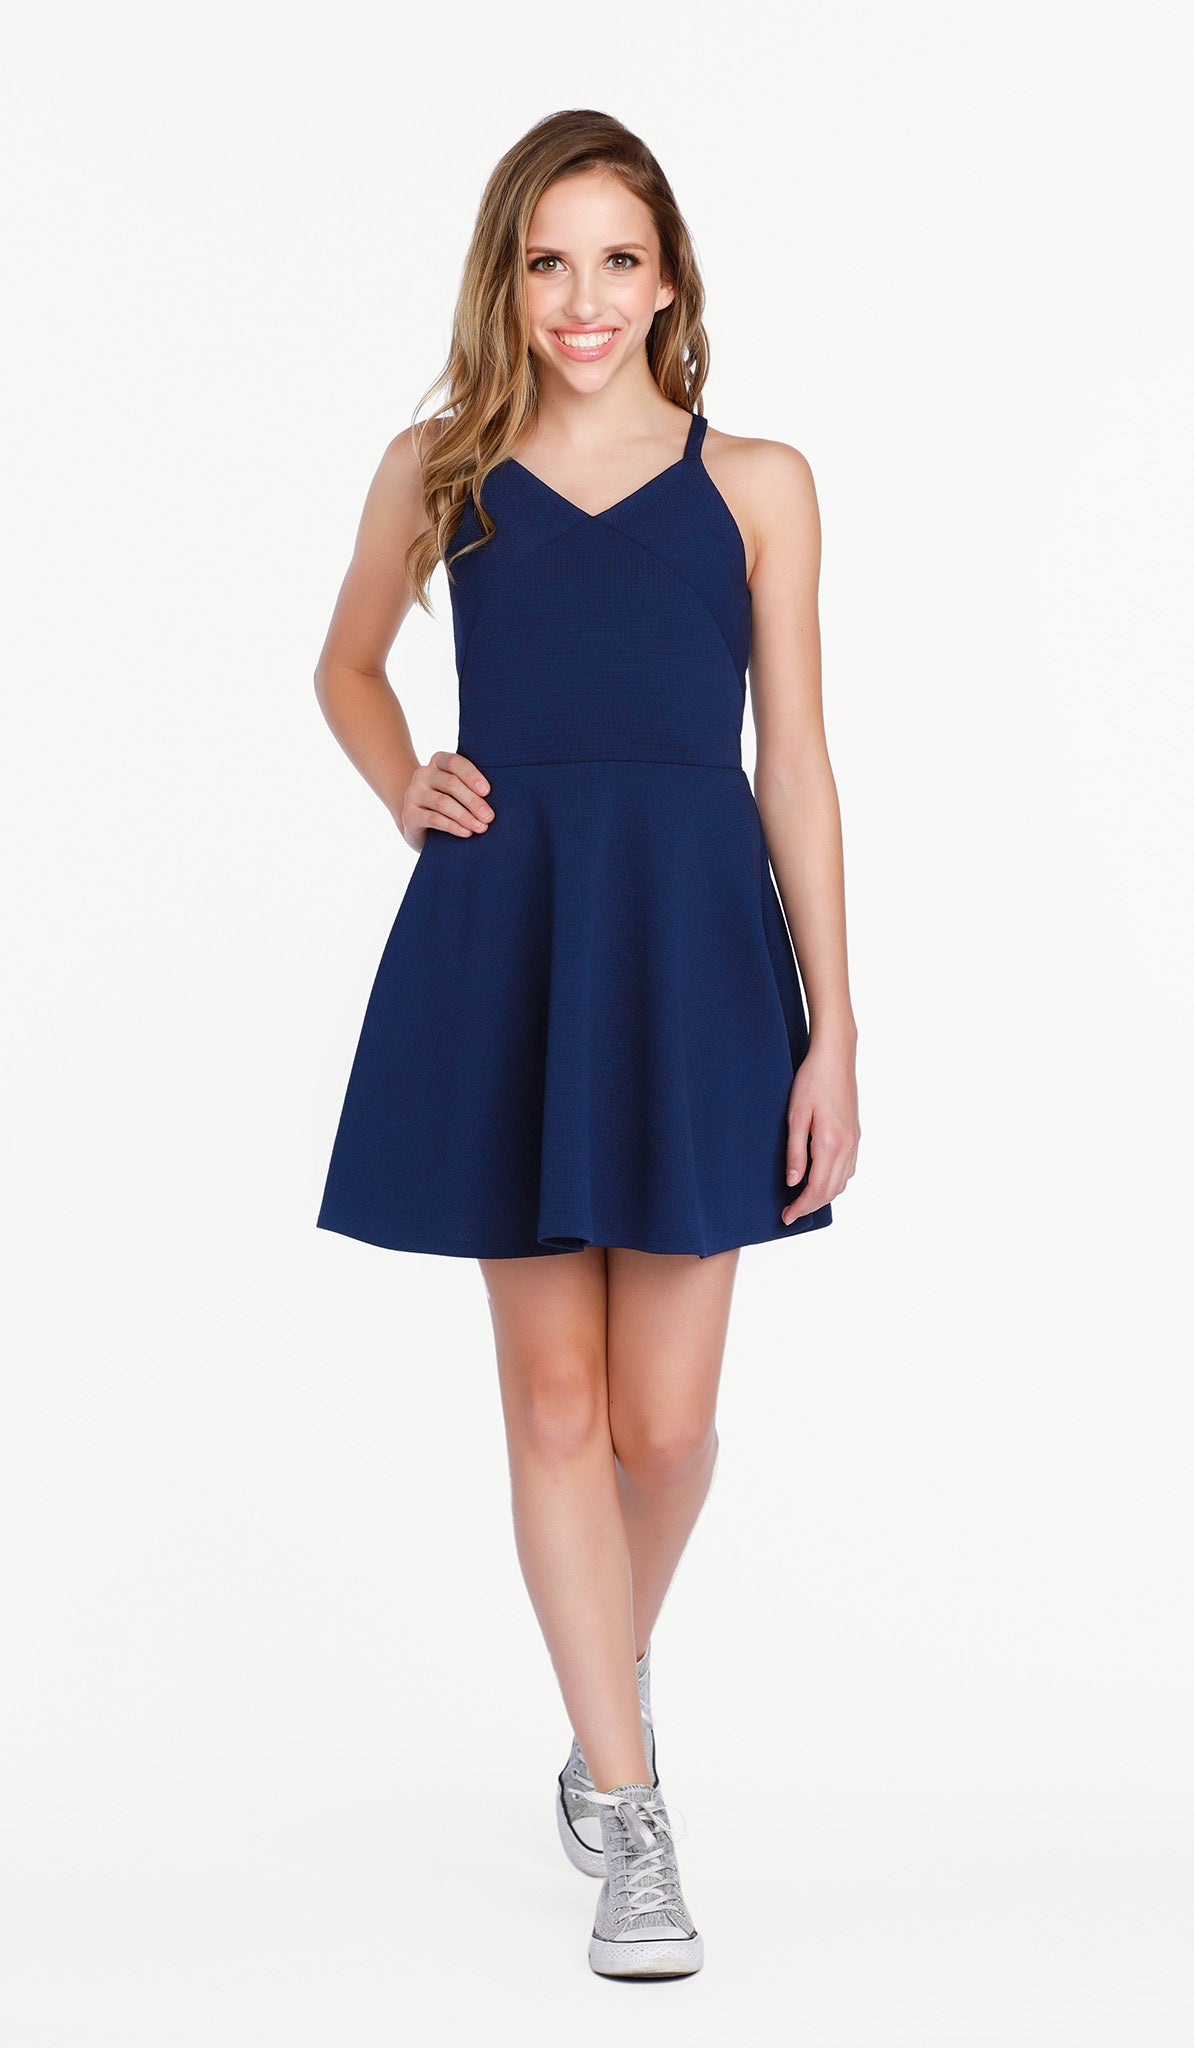 The Sally Miller Gianna Dress in Navy - Navy textured stretch knit fit and flare dress